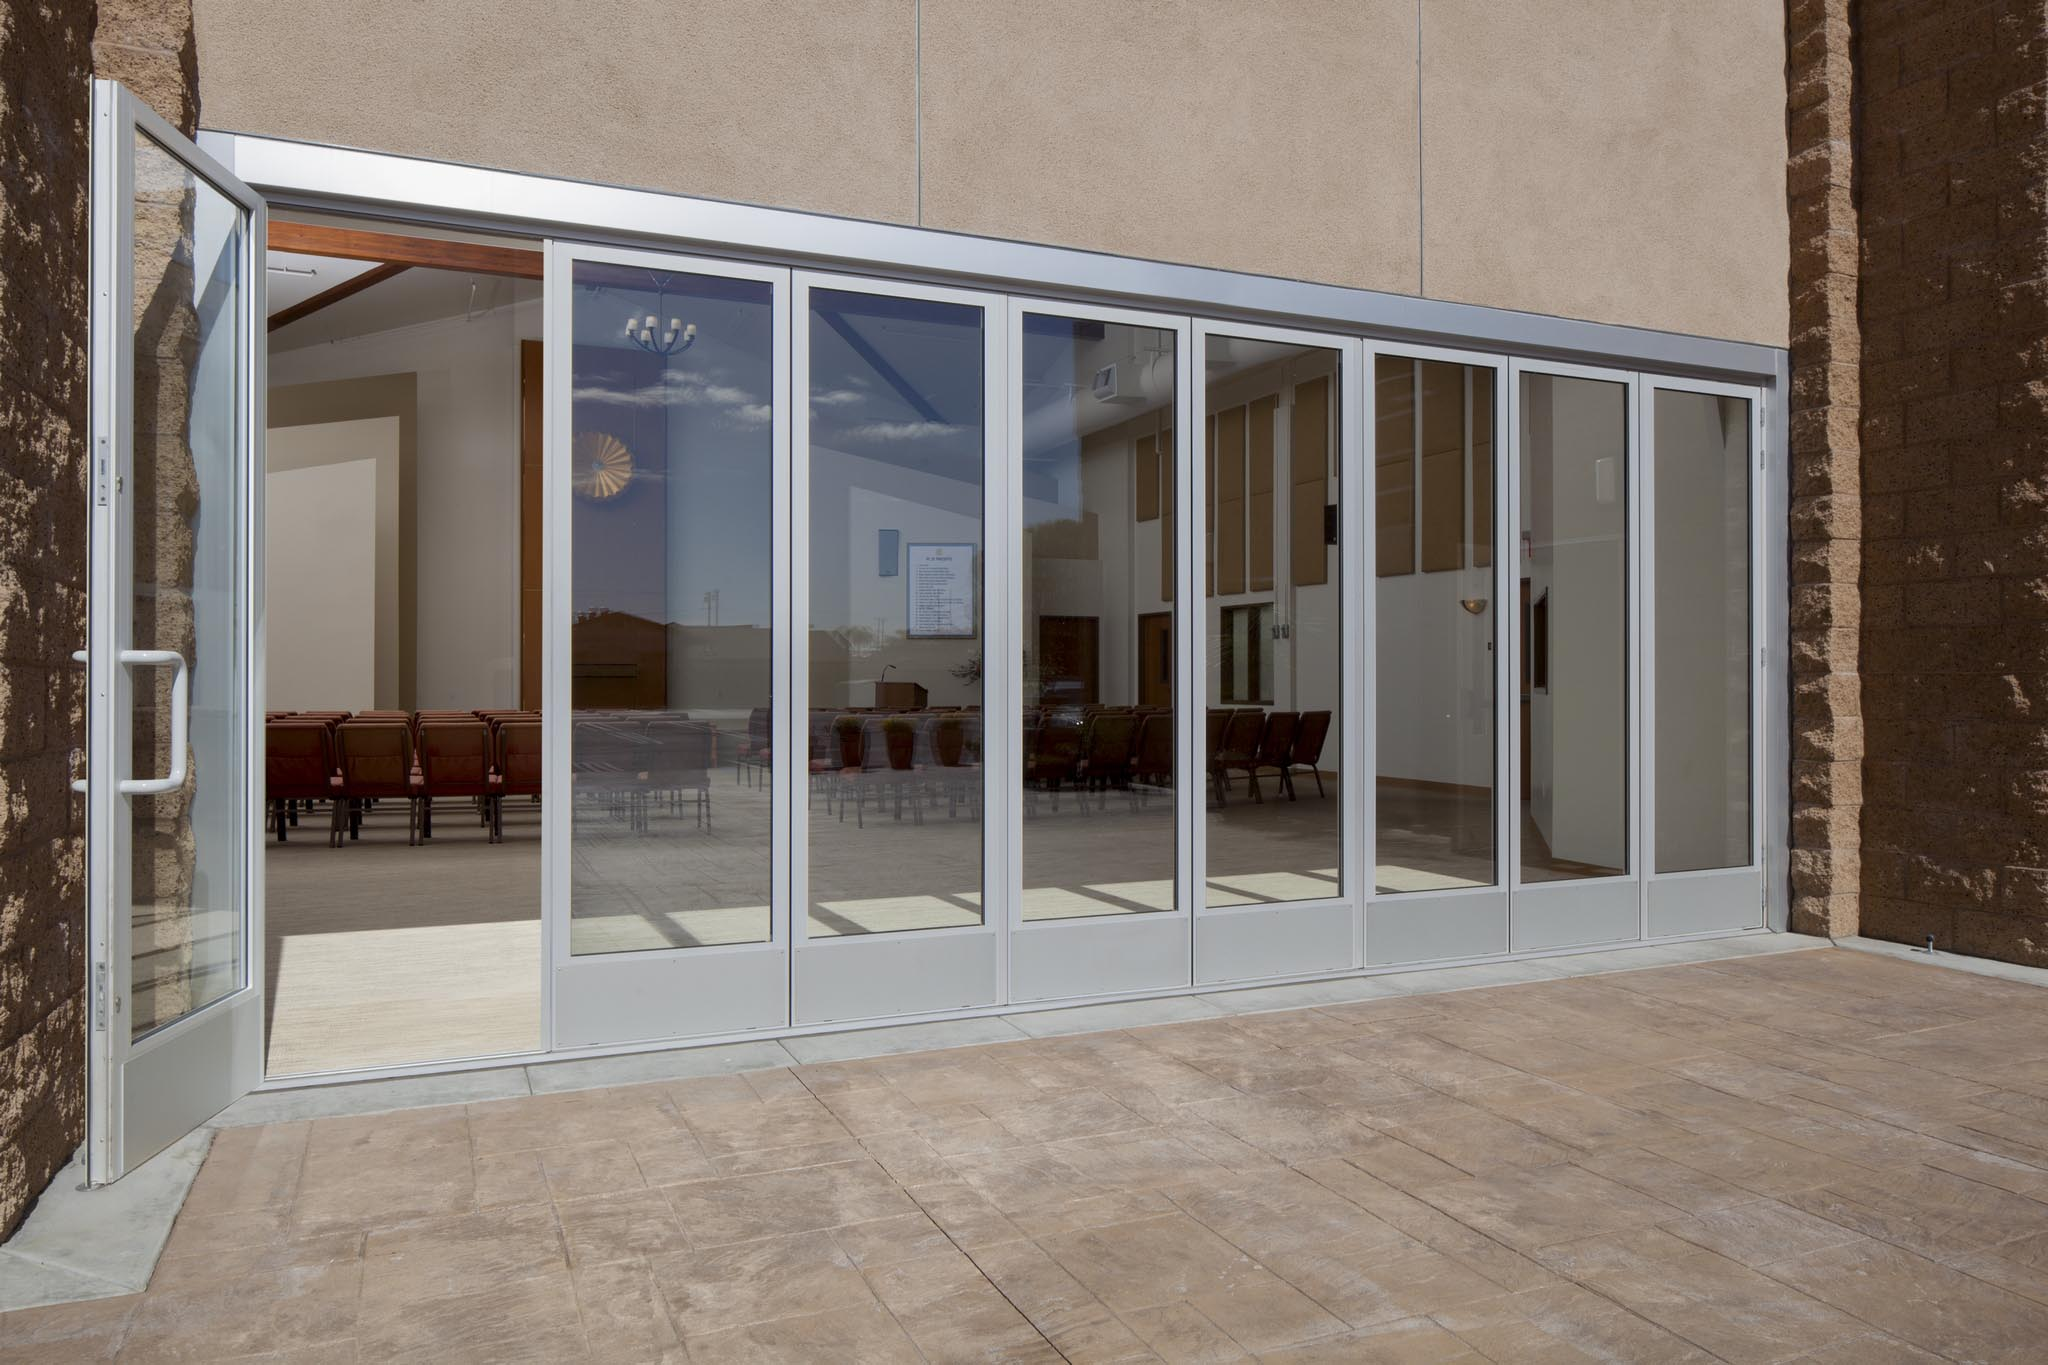 Church of perfect liberty gallery nanawall operable for Cost of nanawall systems